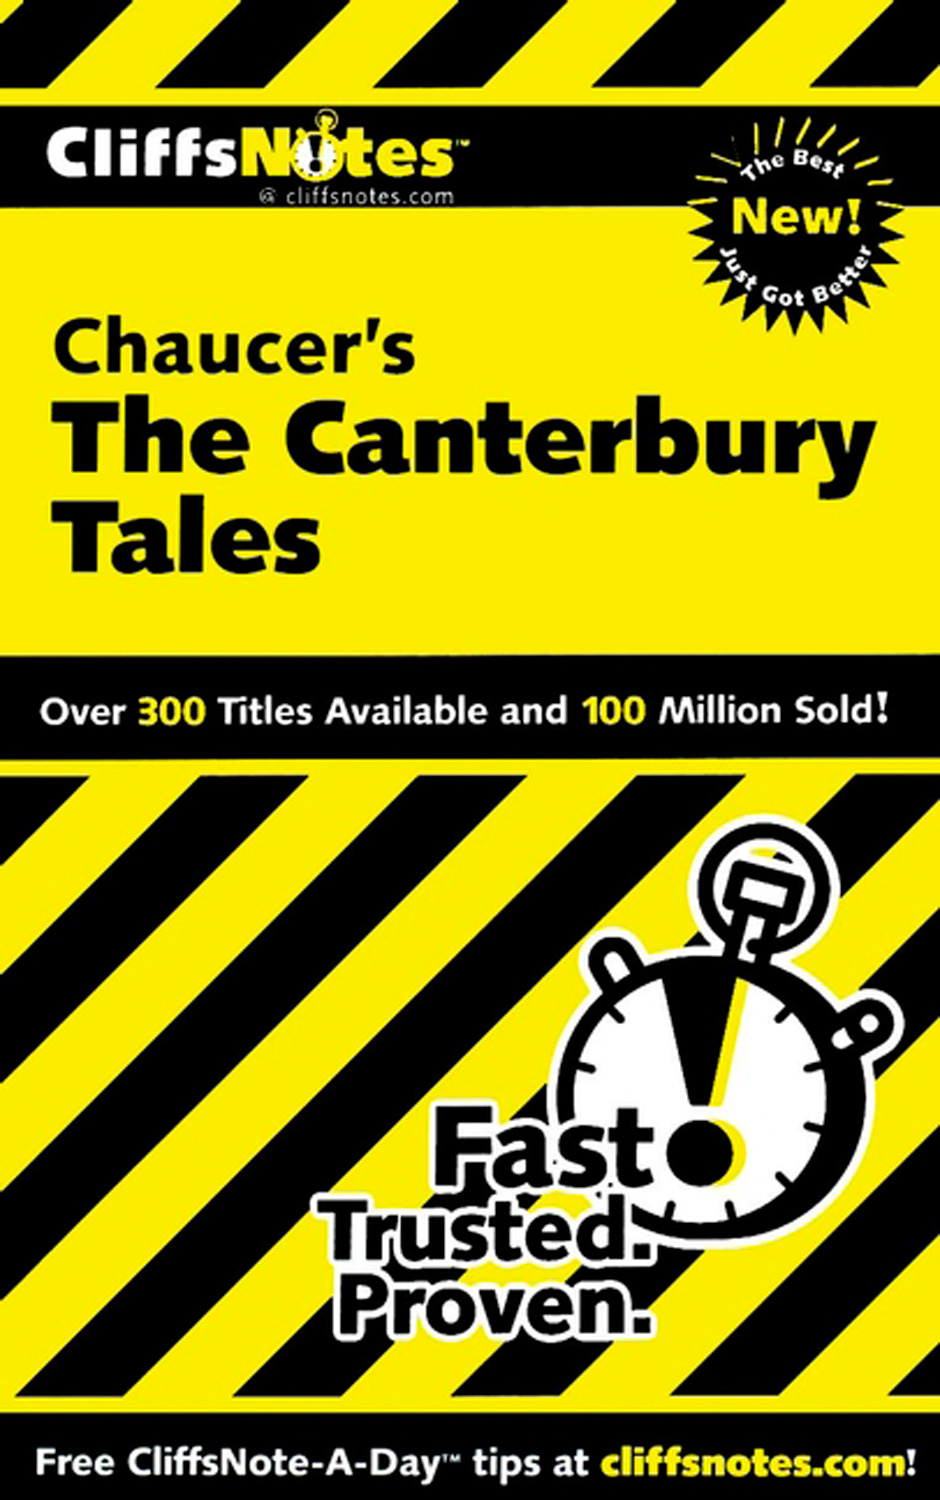 CliffsNotes on Chaucer's The Canterbury Tales-9780544180147